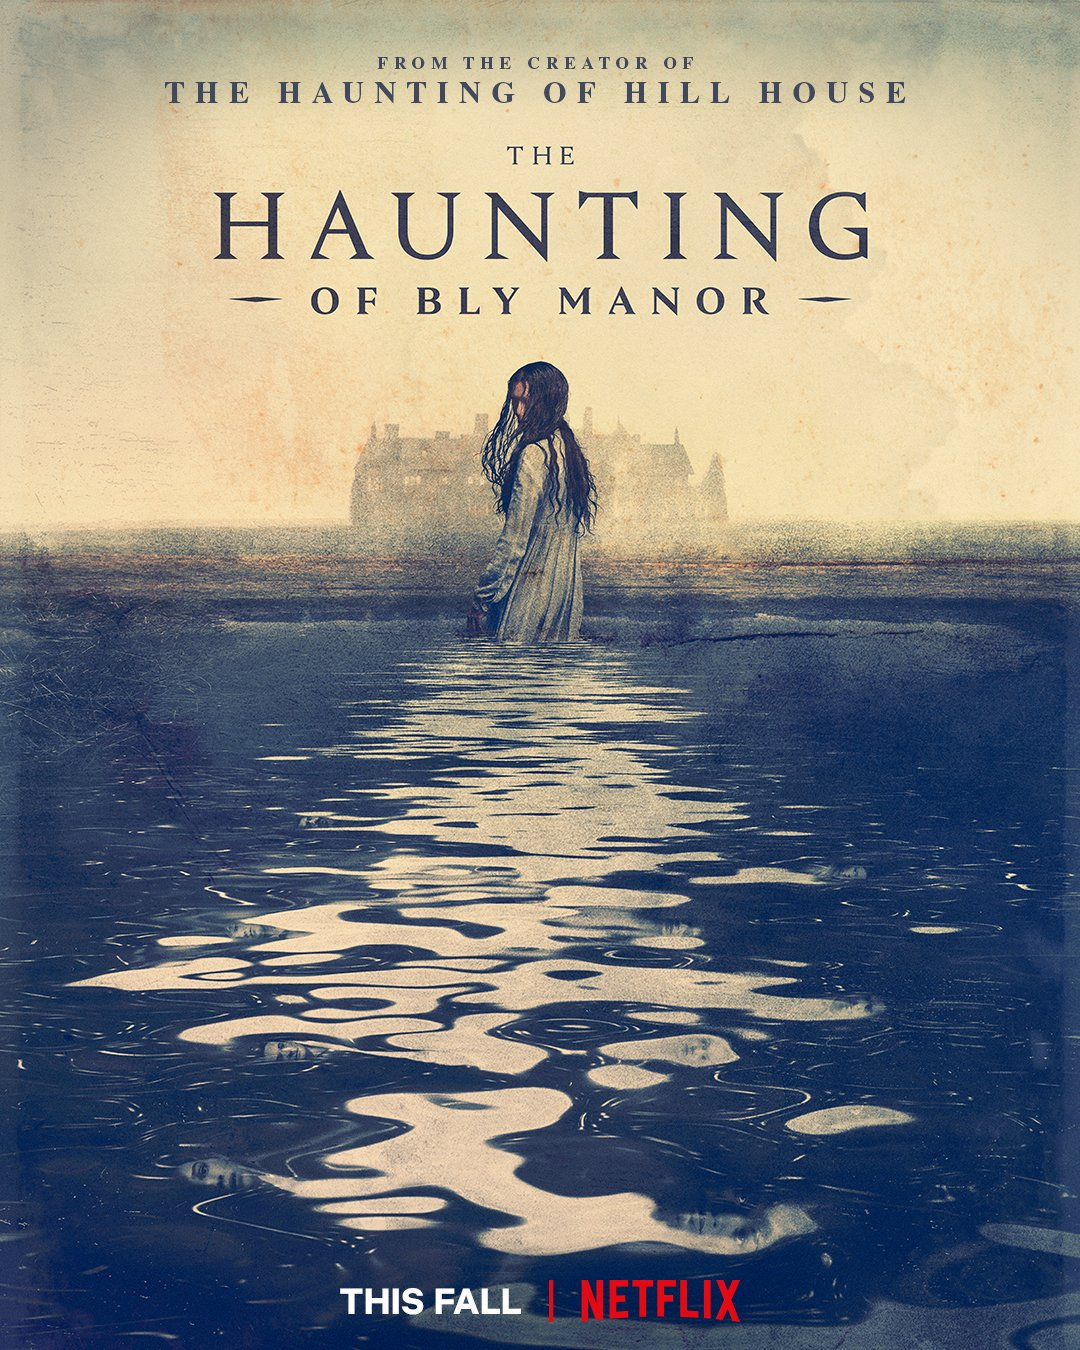 The Haunting Returns With Another Turn Of The Screw Welcome Home To Bly Manor Rue Morgue